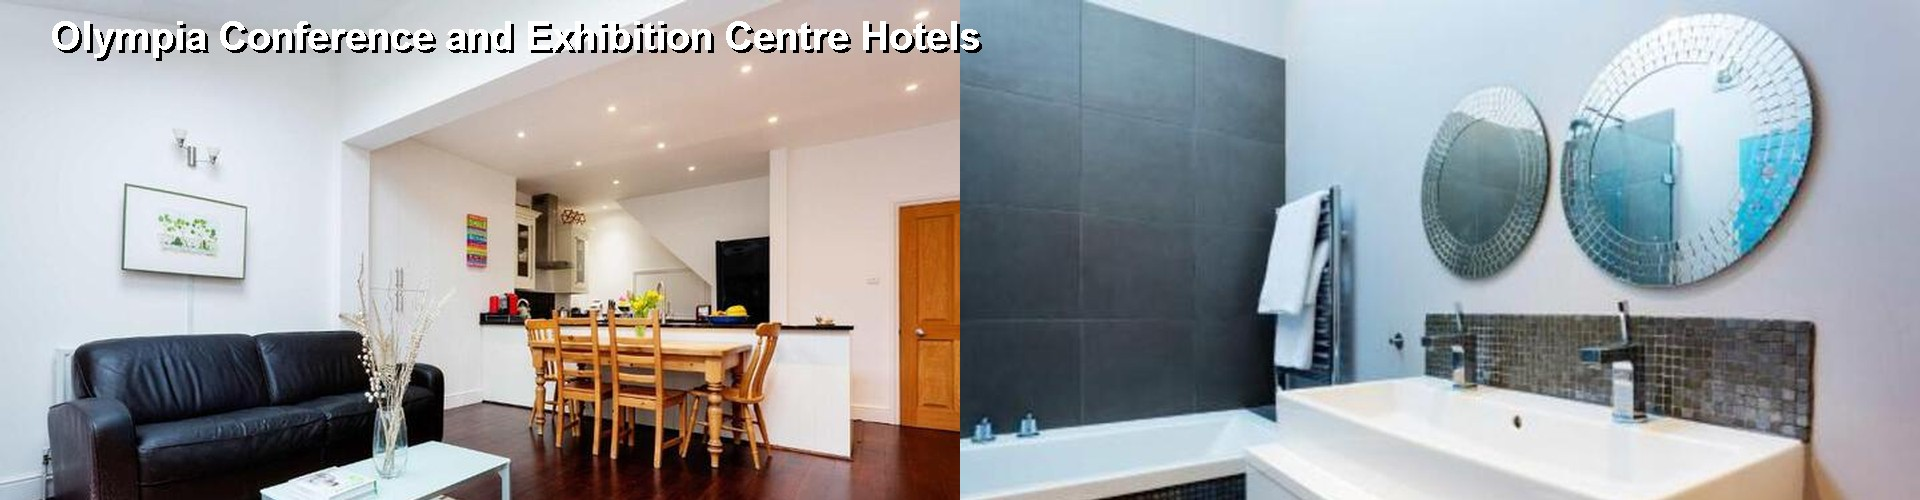 5 Best Hotels near Olympia Conference and Exhibition Centre